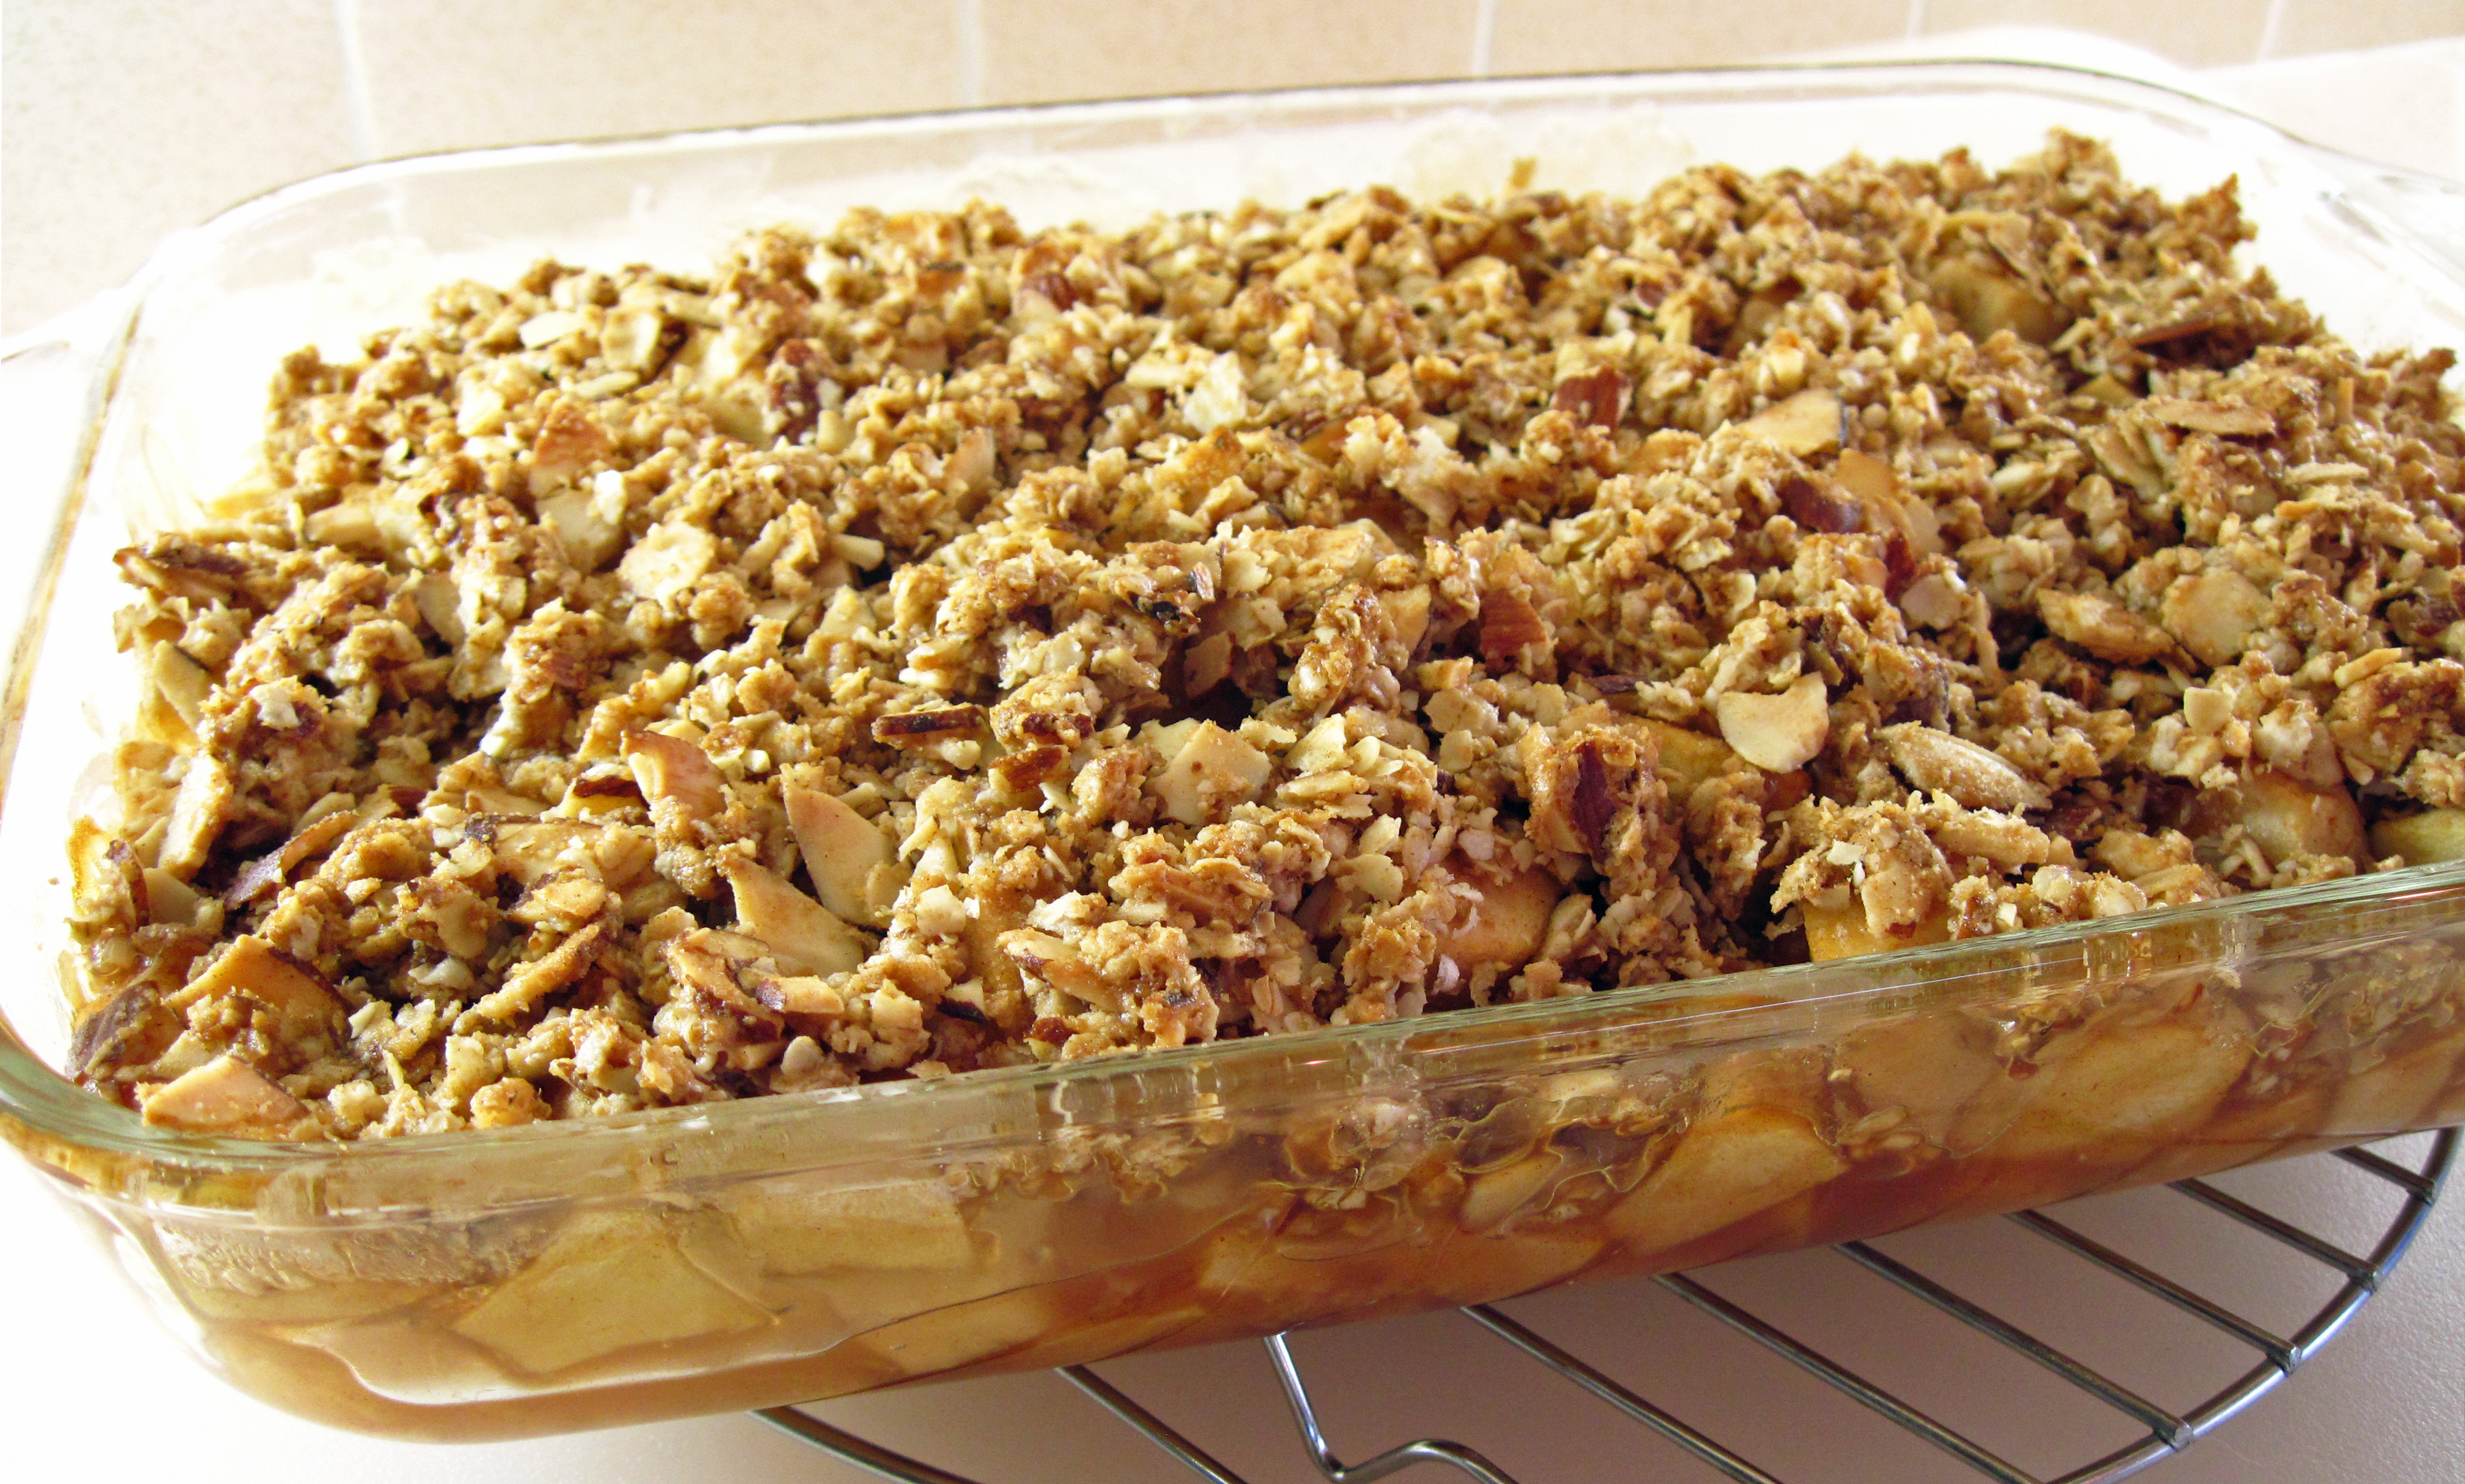 Apple Crisp (or any Fruit Crisp) | In the kitchen with Kath